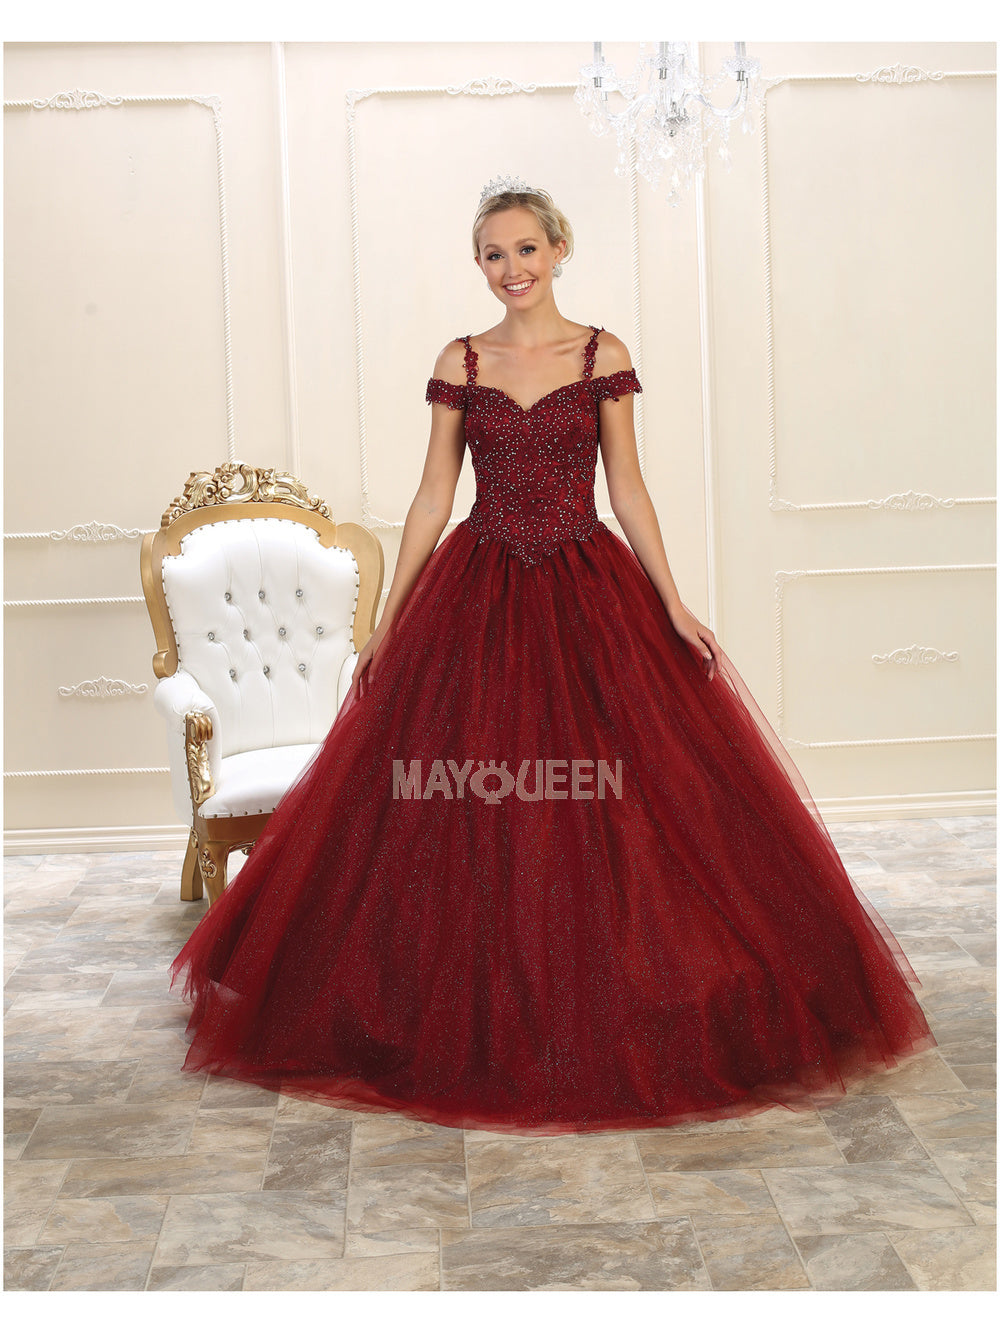 Mayqueen Size Chart E MQ LK101 - Off The Shoulder Tulle Ball Gown with Corset Back - Diggz Prom